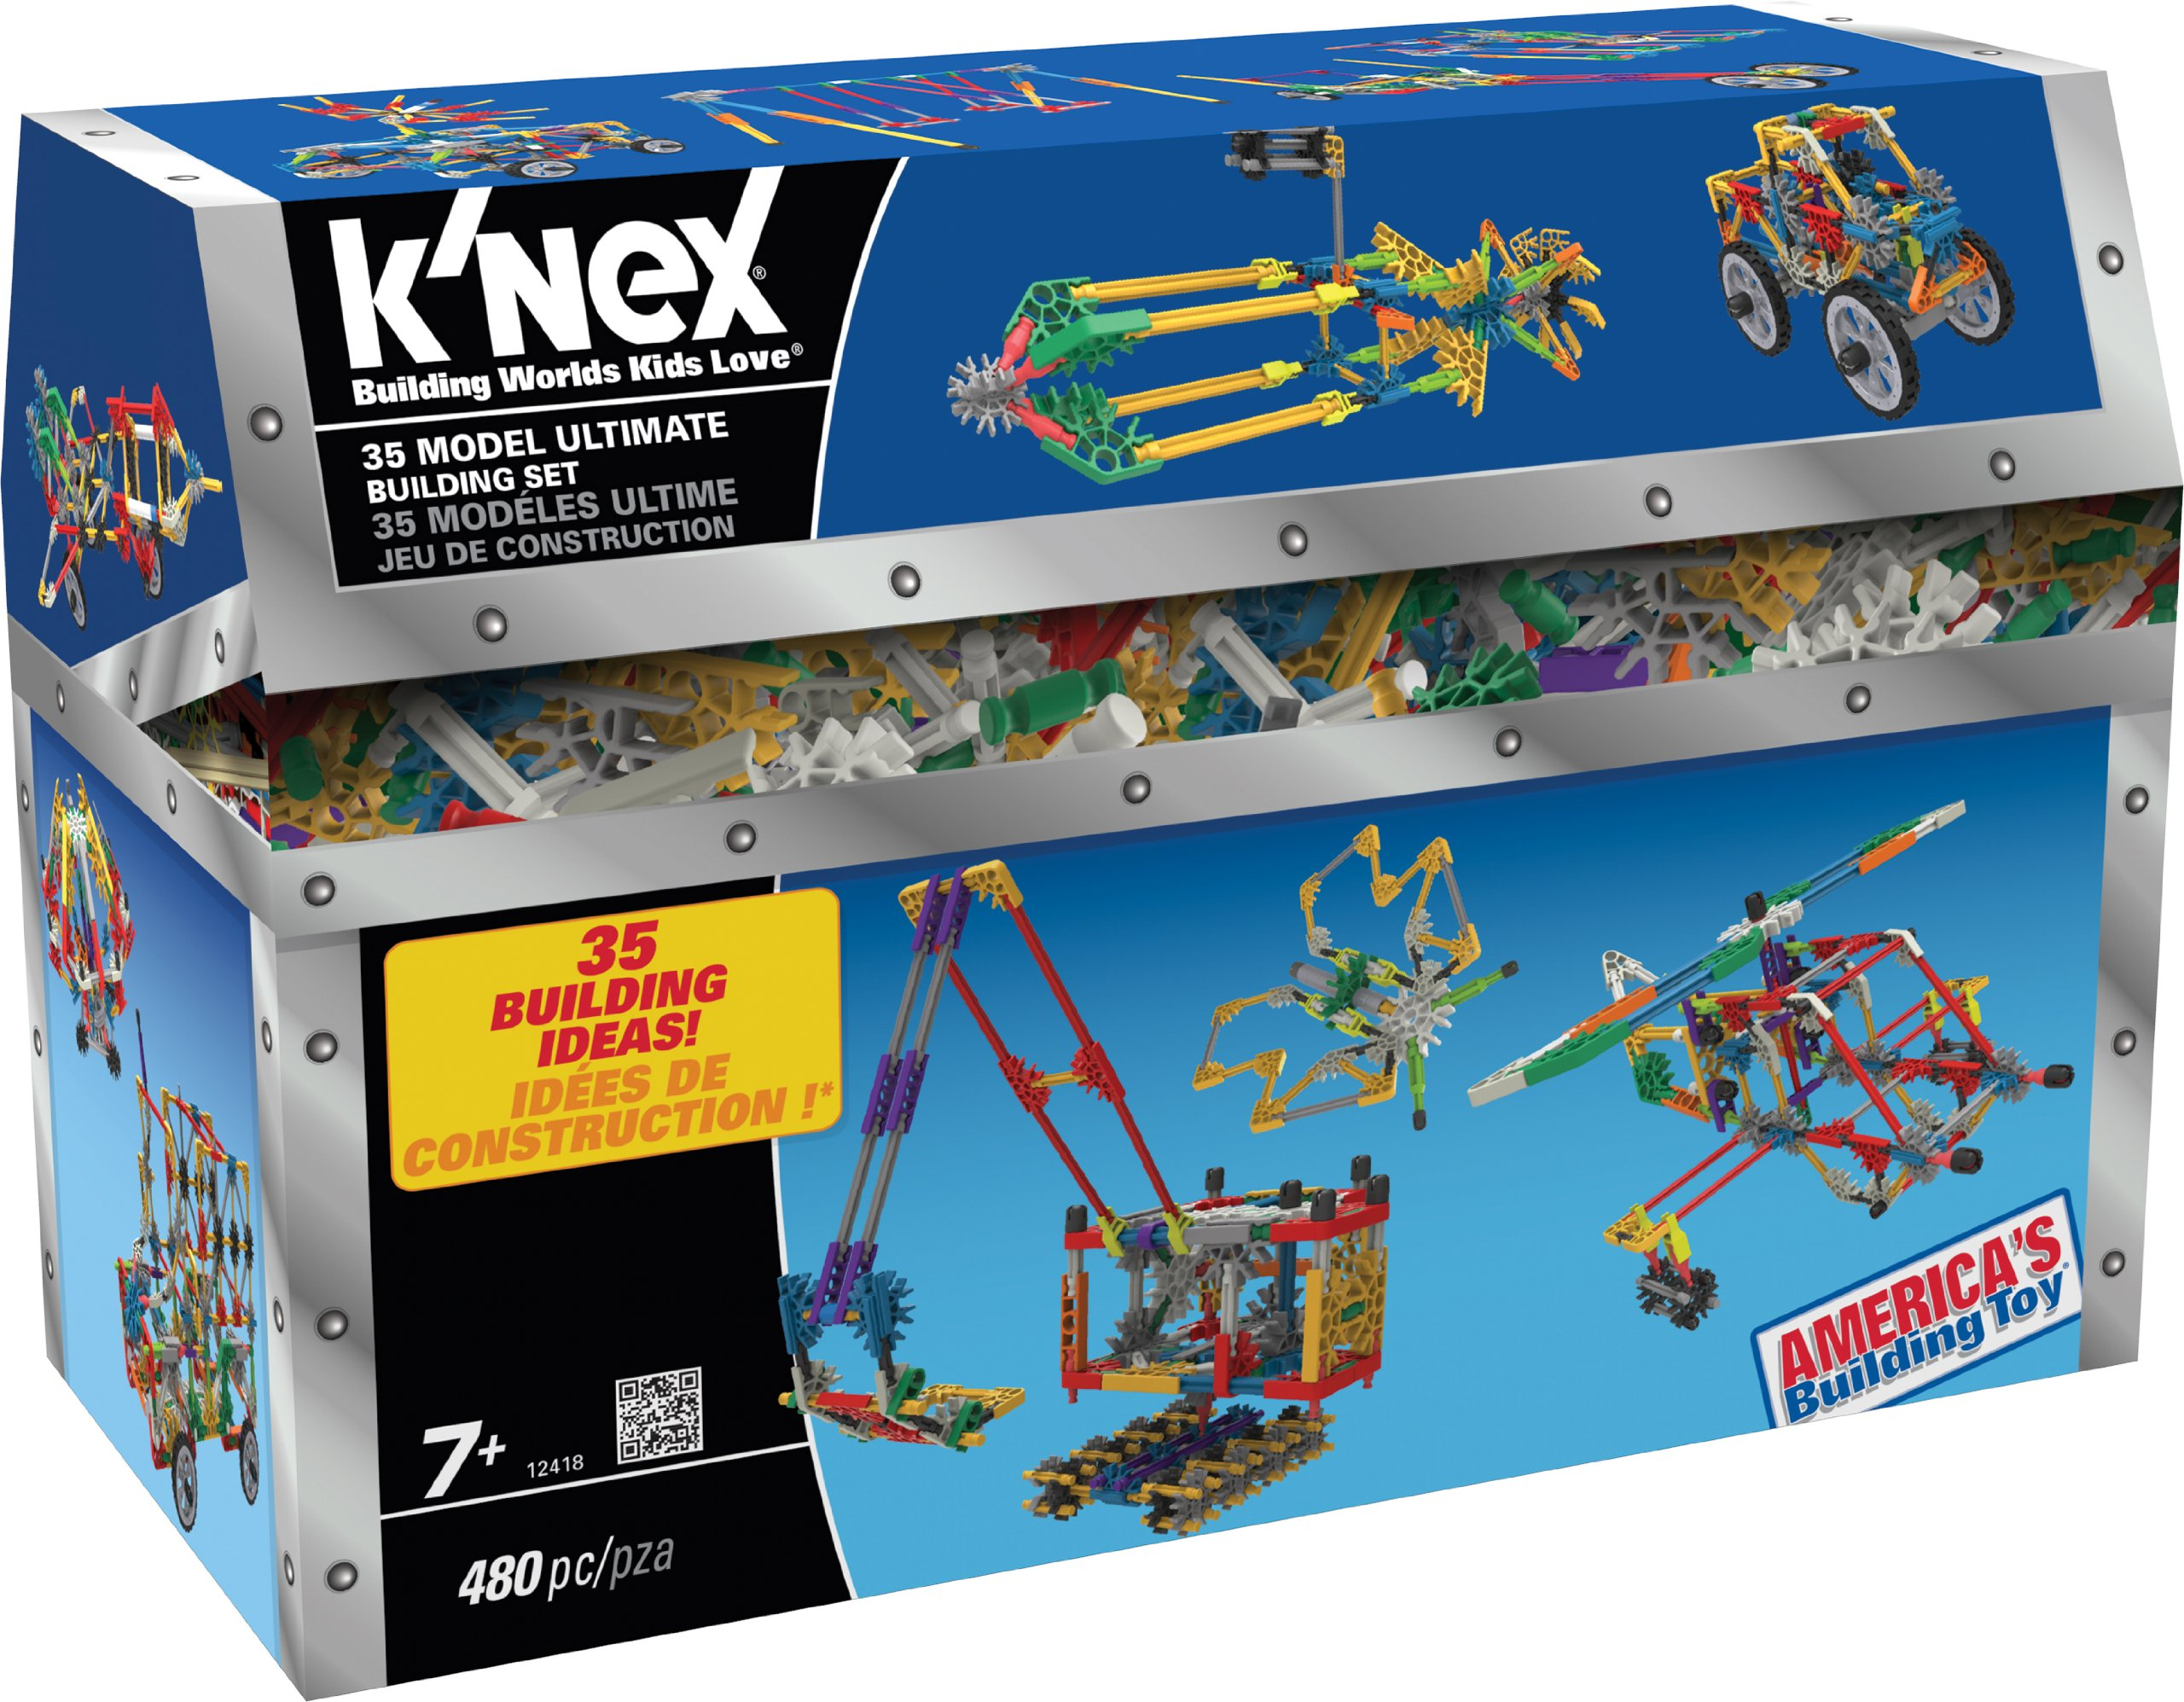 Toy Building Set For Boys : K nex model ultimate building set kit assembly toy for